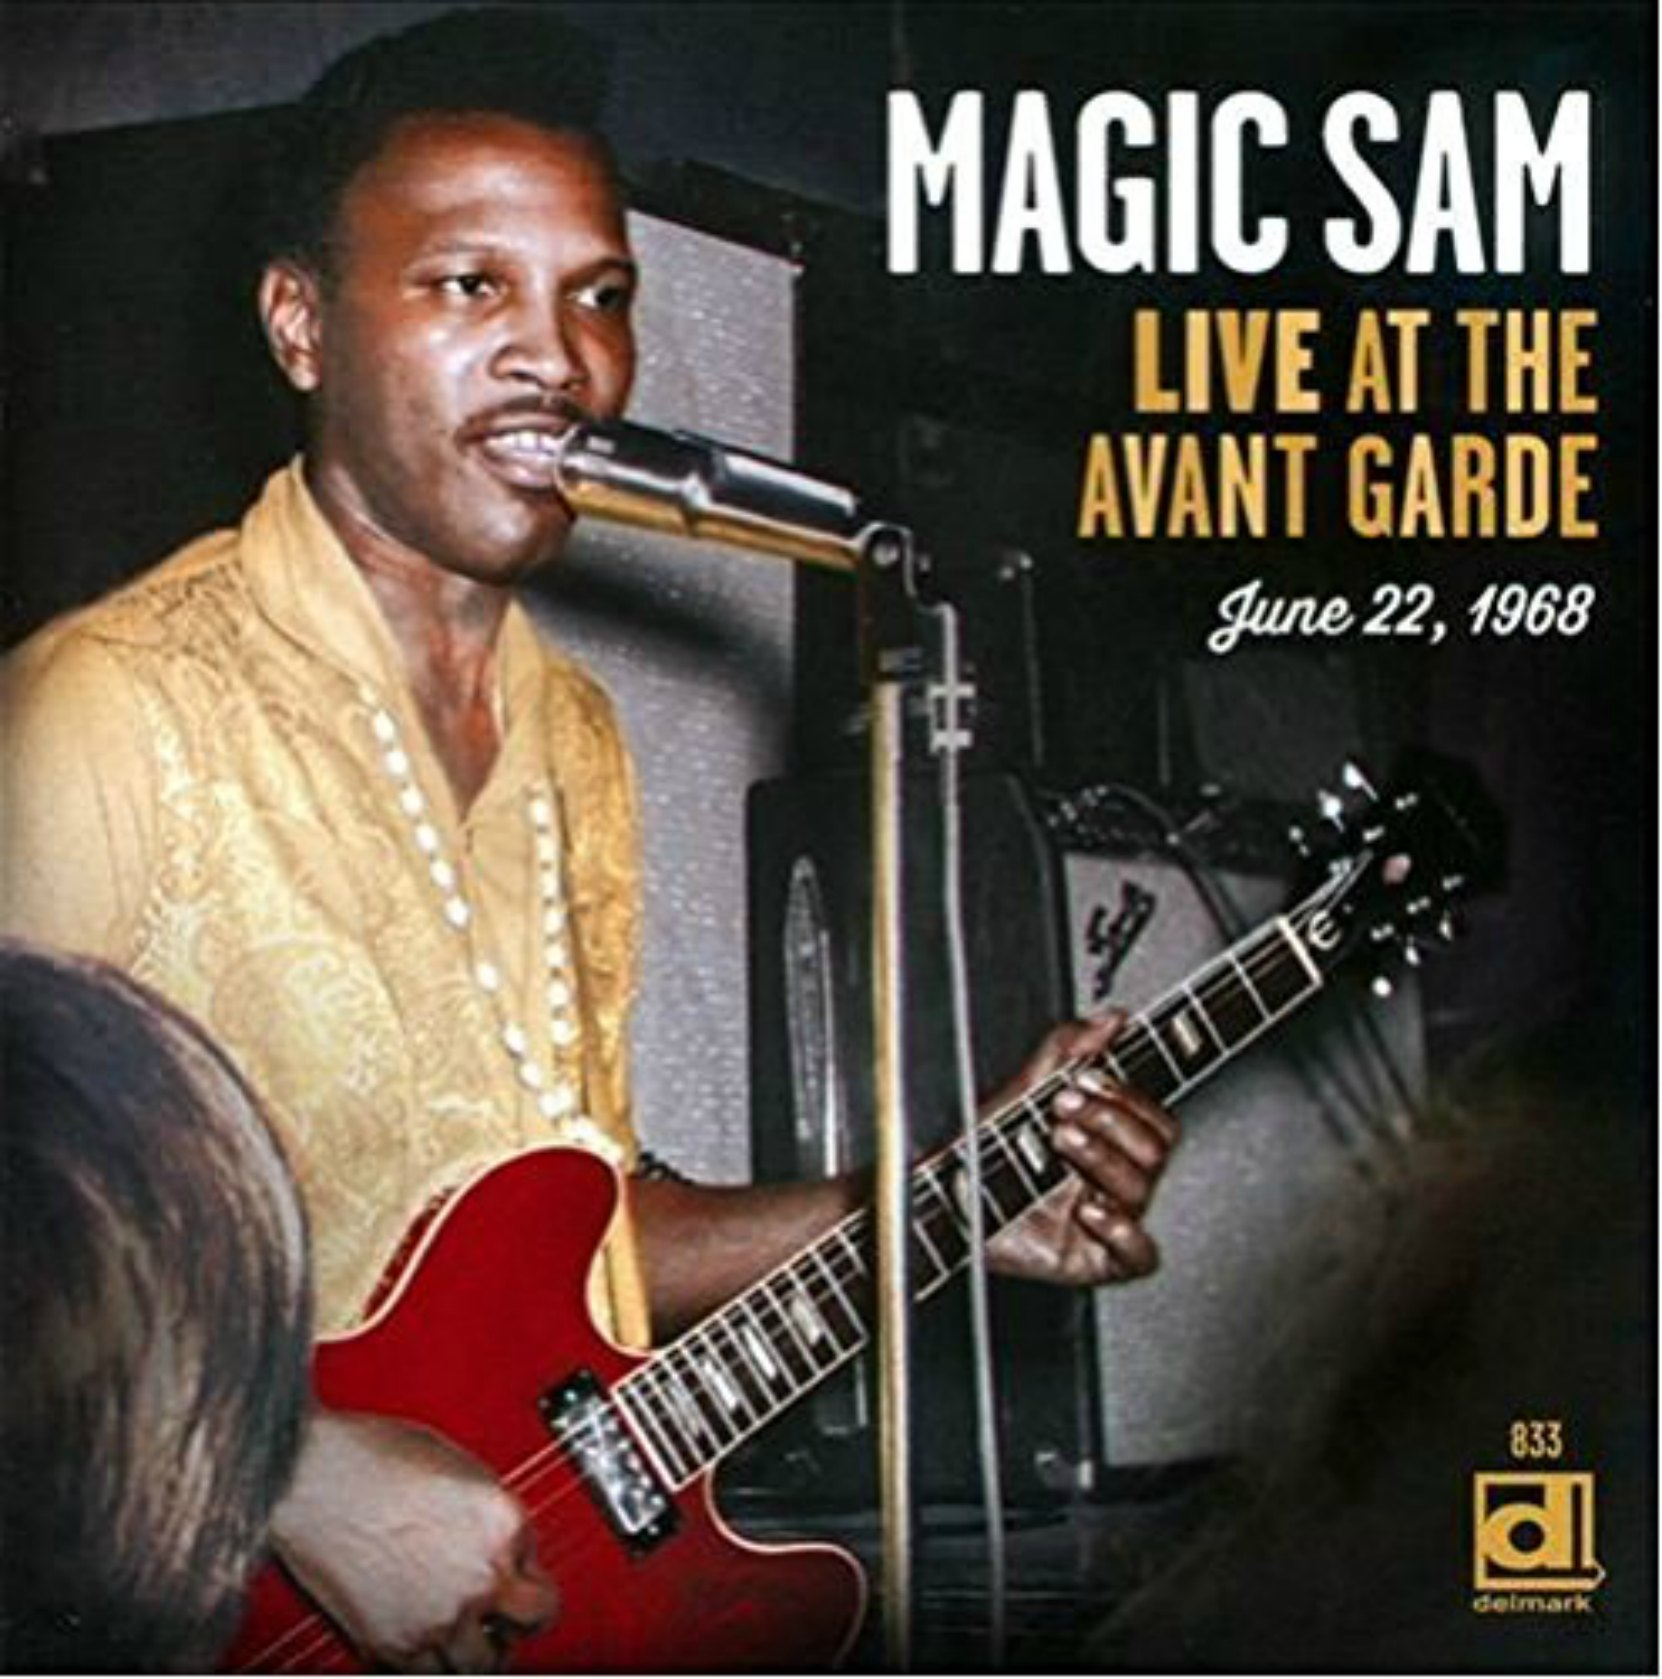 CD cover, Live At The Avant Garde, by Magic Sam Blues Band, released by Delmark Records.